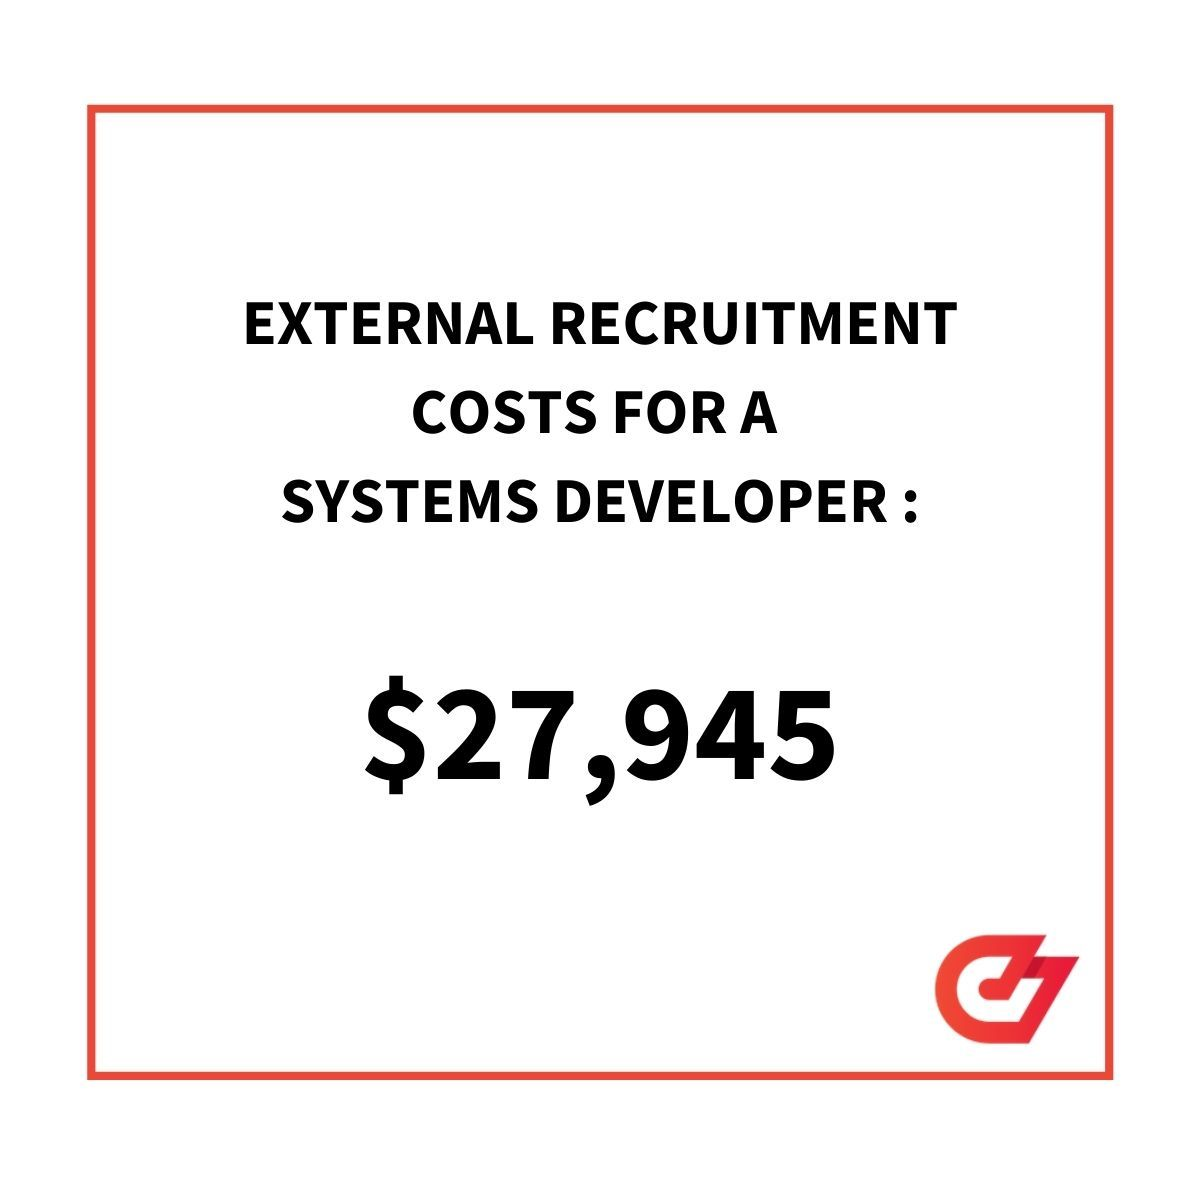 external recruitment costs for a systems developer equals $27,945